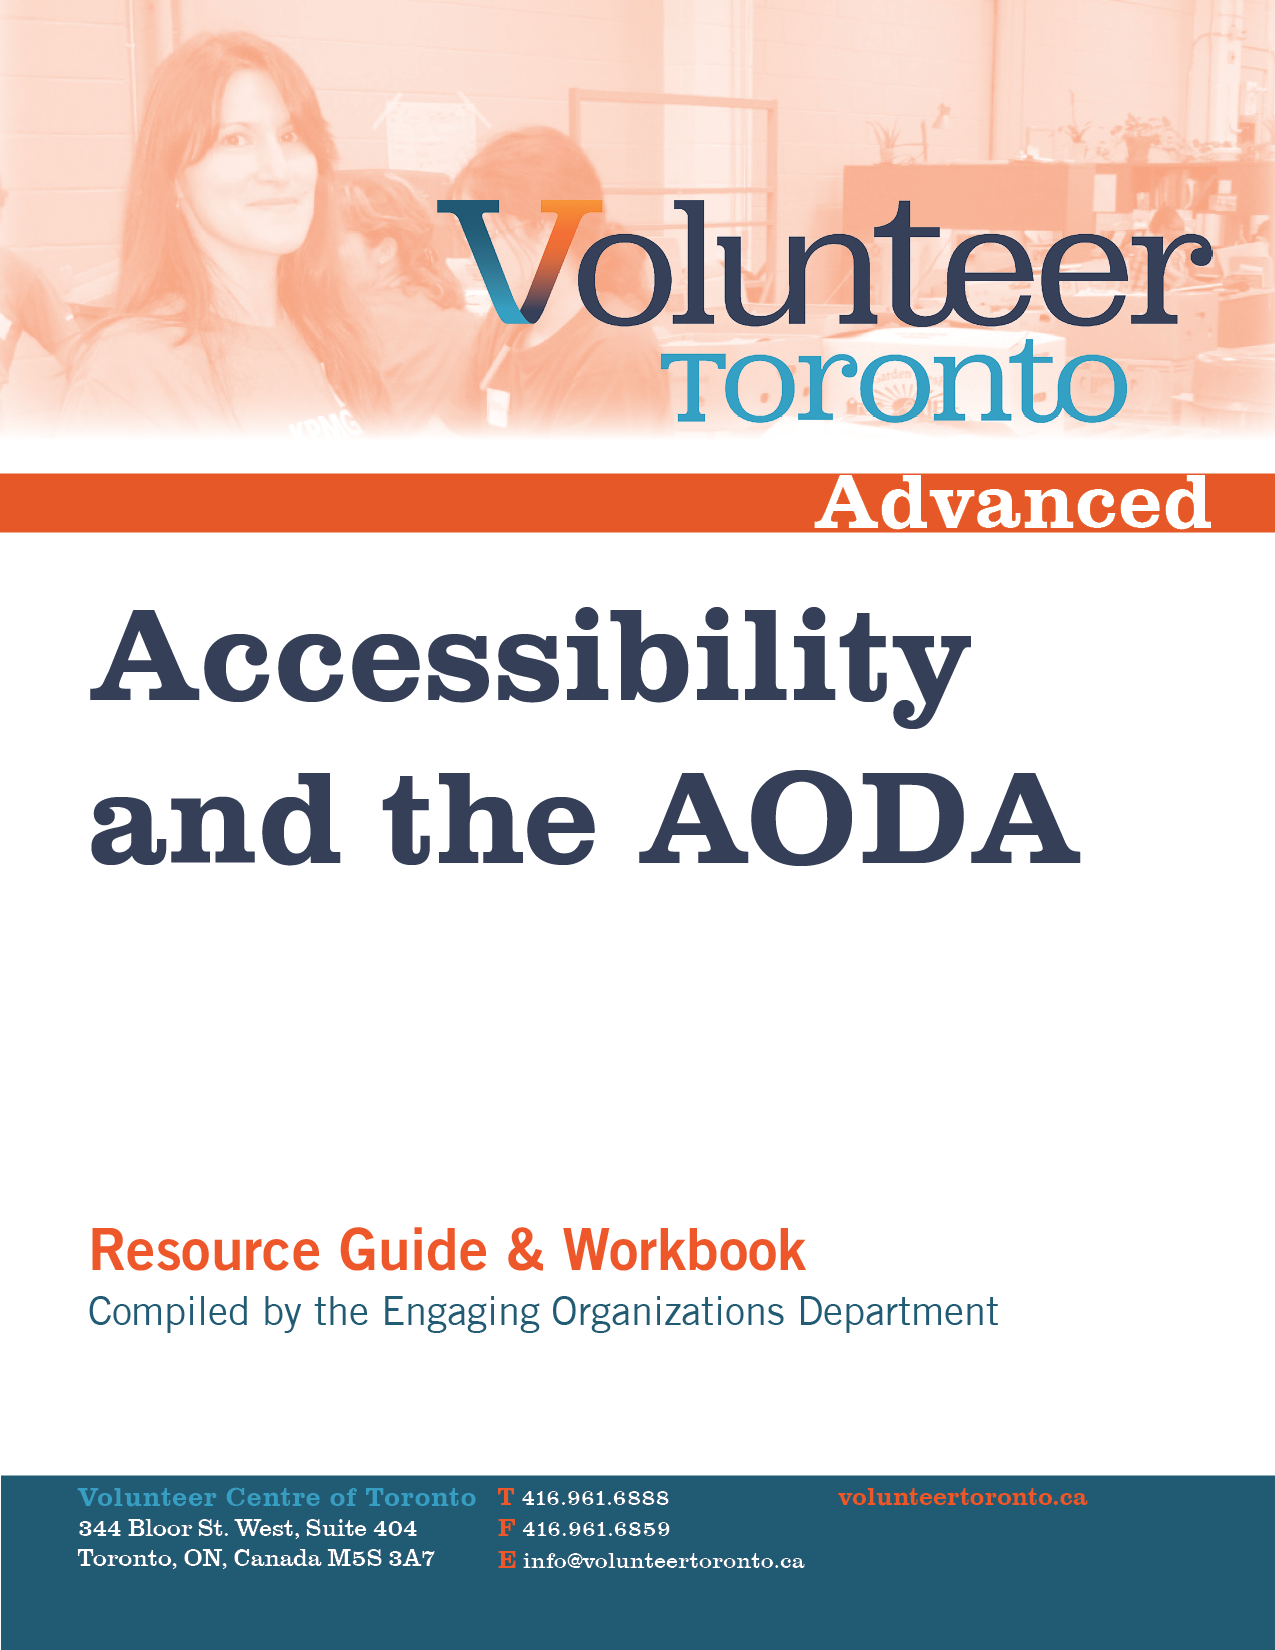 aoda policy template - management resources volunteer toronto